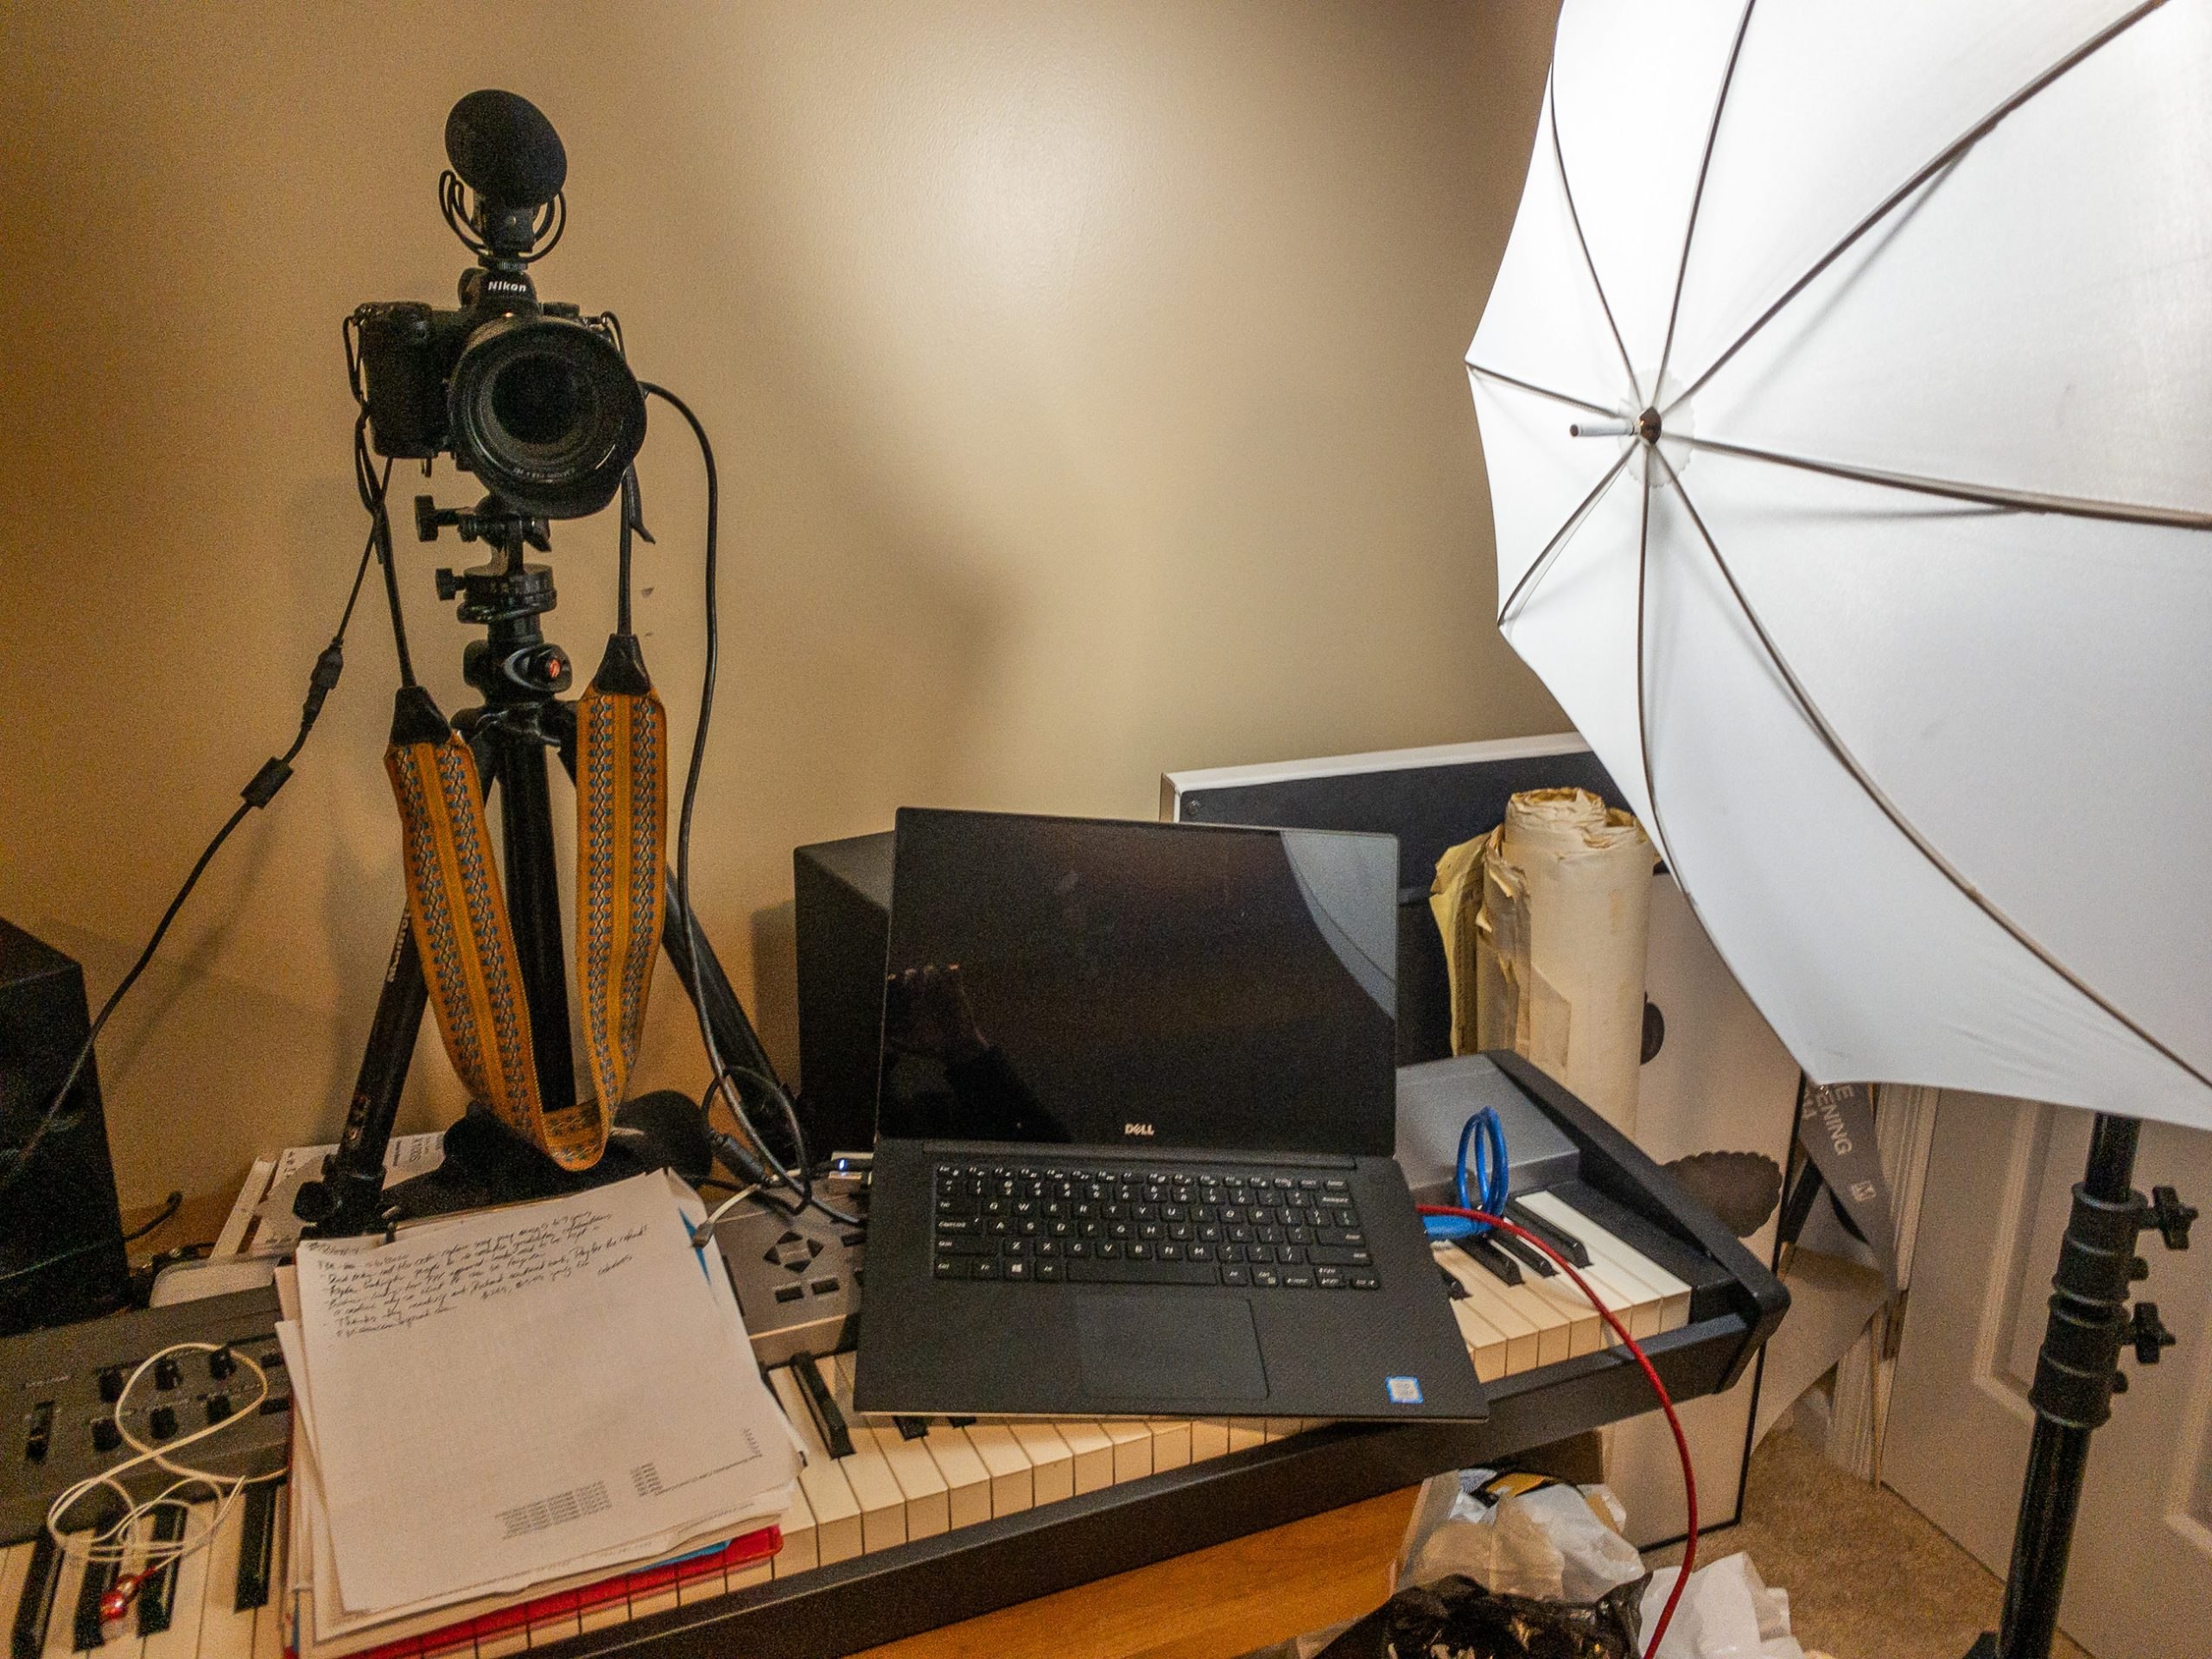 Quarantine 2 - Video - overview of lighting setup with laptop, camera, and lighting ©TimeLine Media